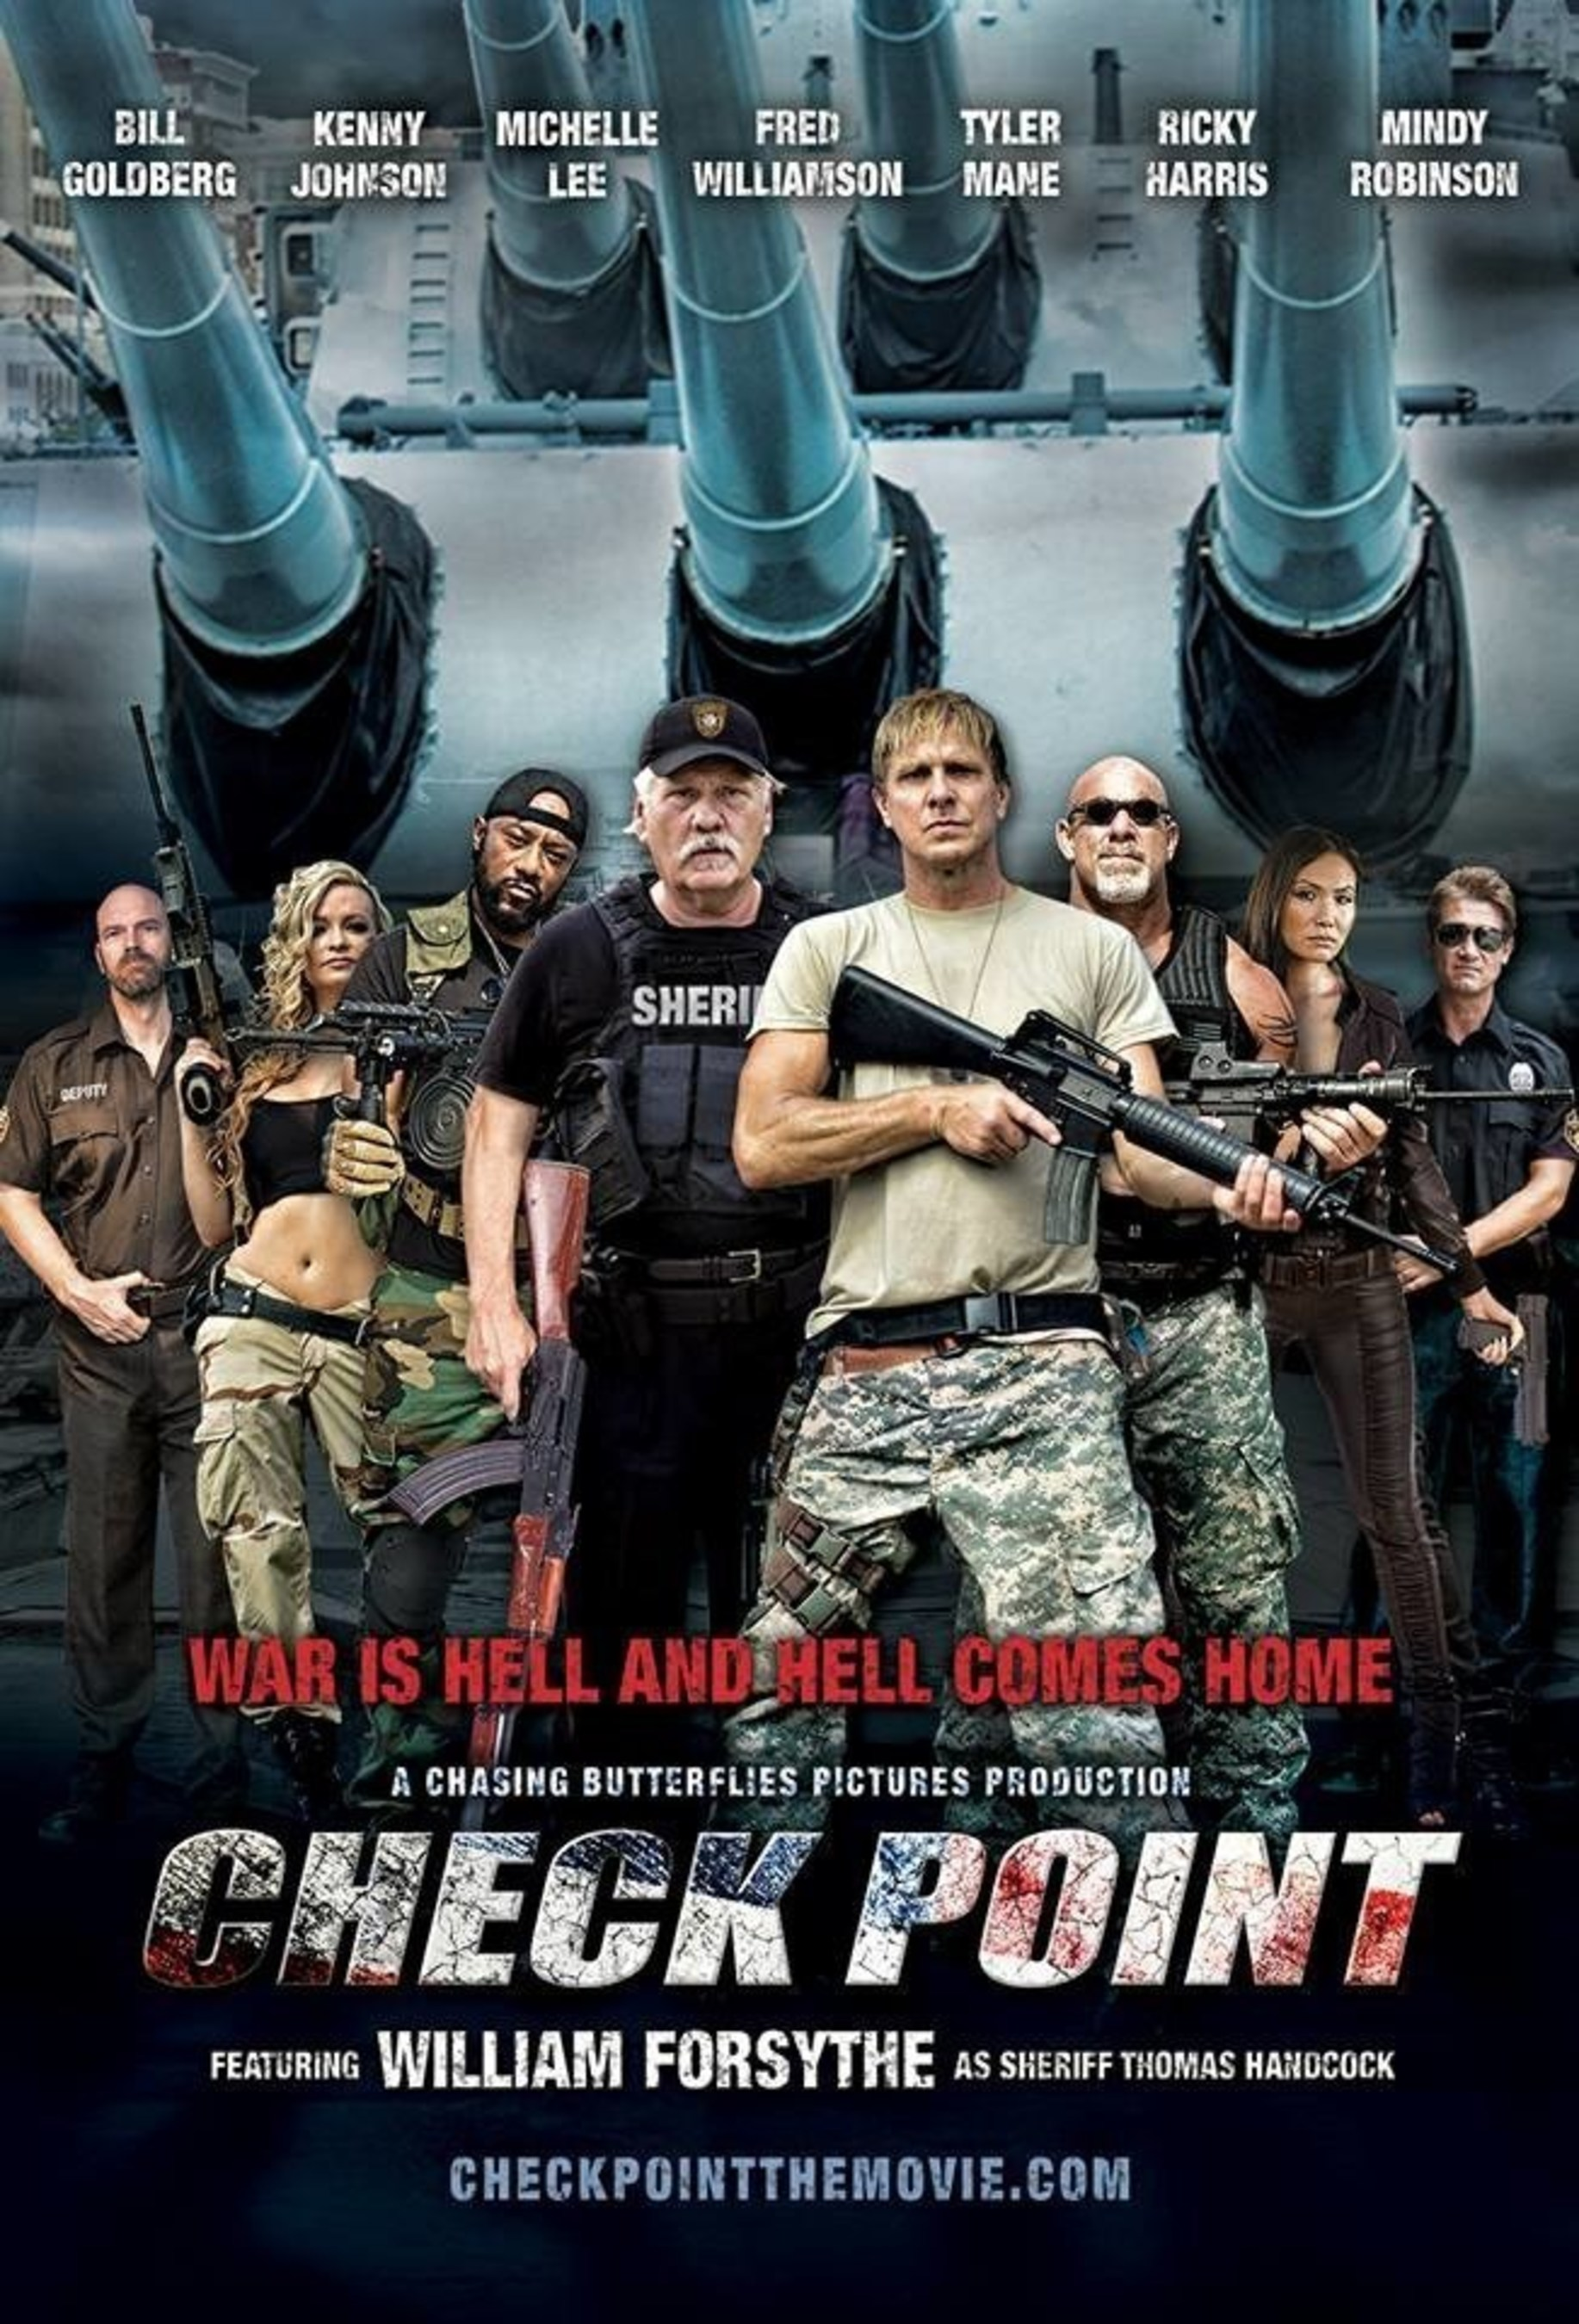 Check Point Movie Unmasks Real Life Terrorist 'Sleeper Cells' in the USA, Starring Kenny Johnson,